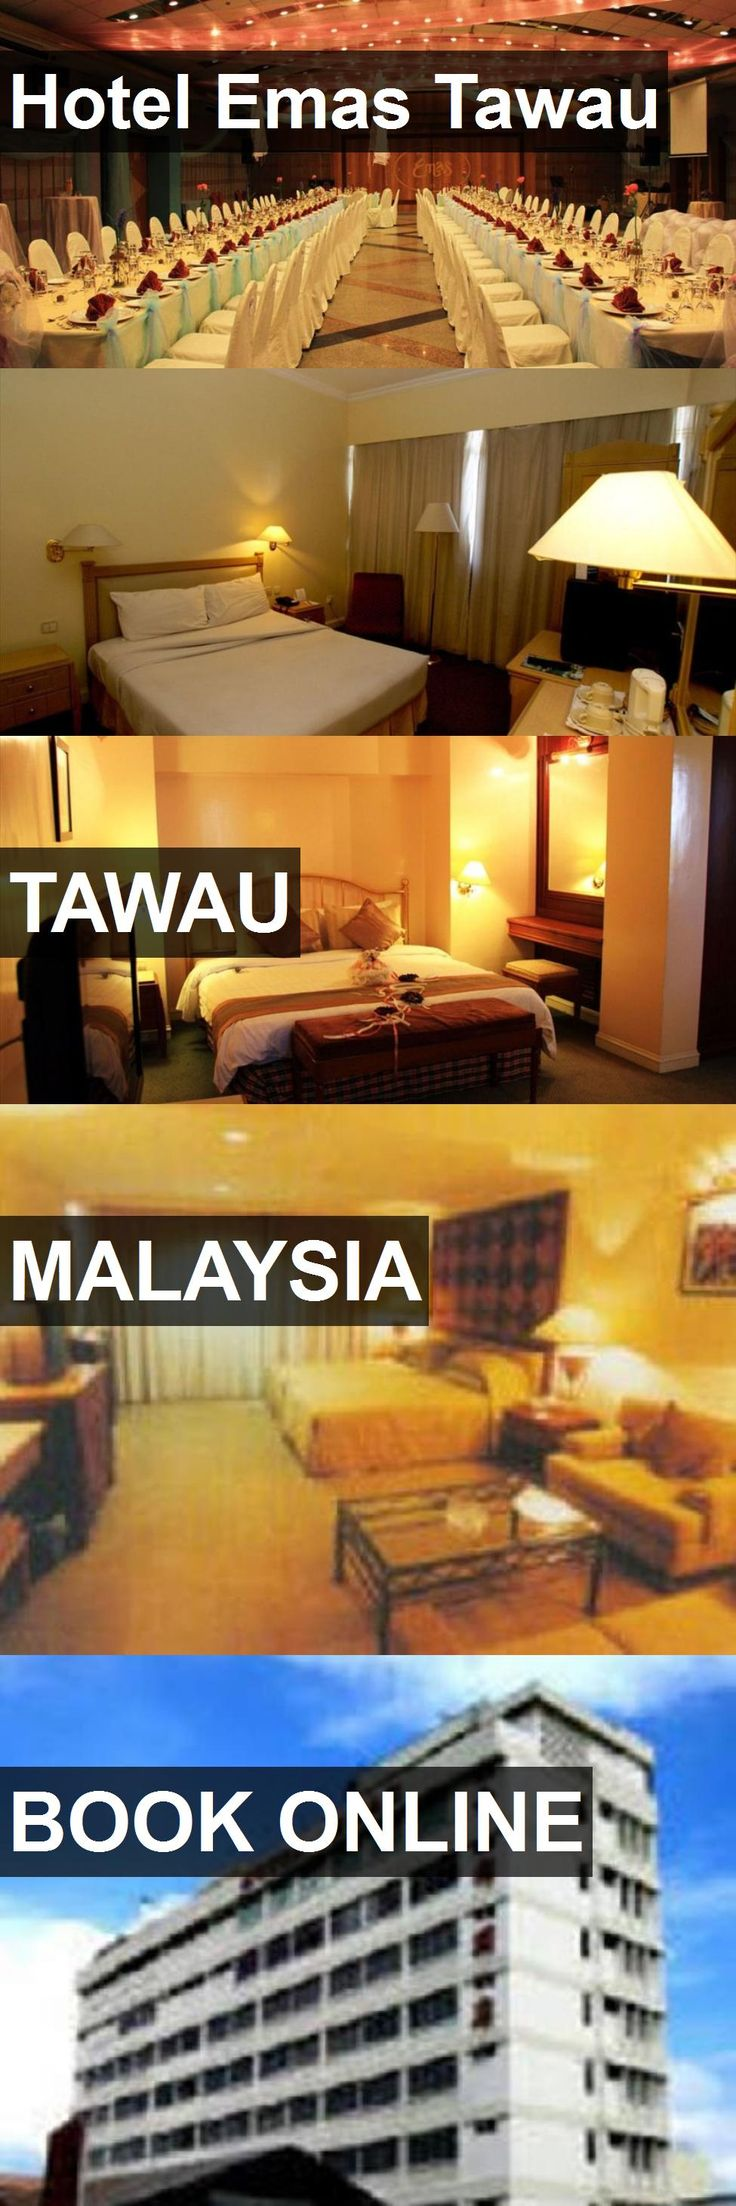 Hotel Hotel Emas Tawau in Tawau, Malaysia. For more information, photos, reviews and best prices please follow the link. #Malaysia #Tawau #HotelEmasTawau #hotel #travel #vacation